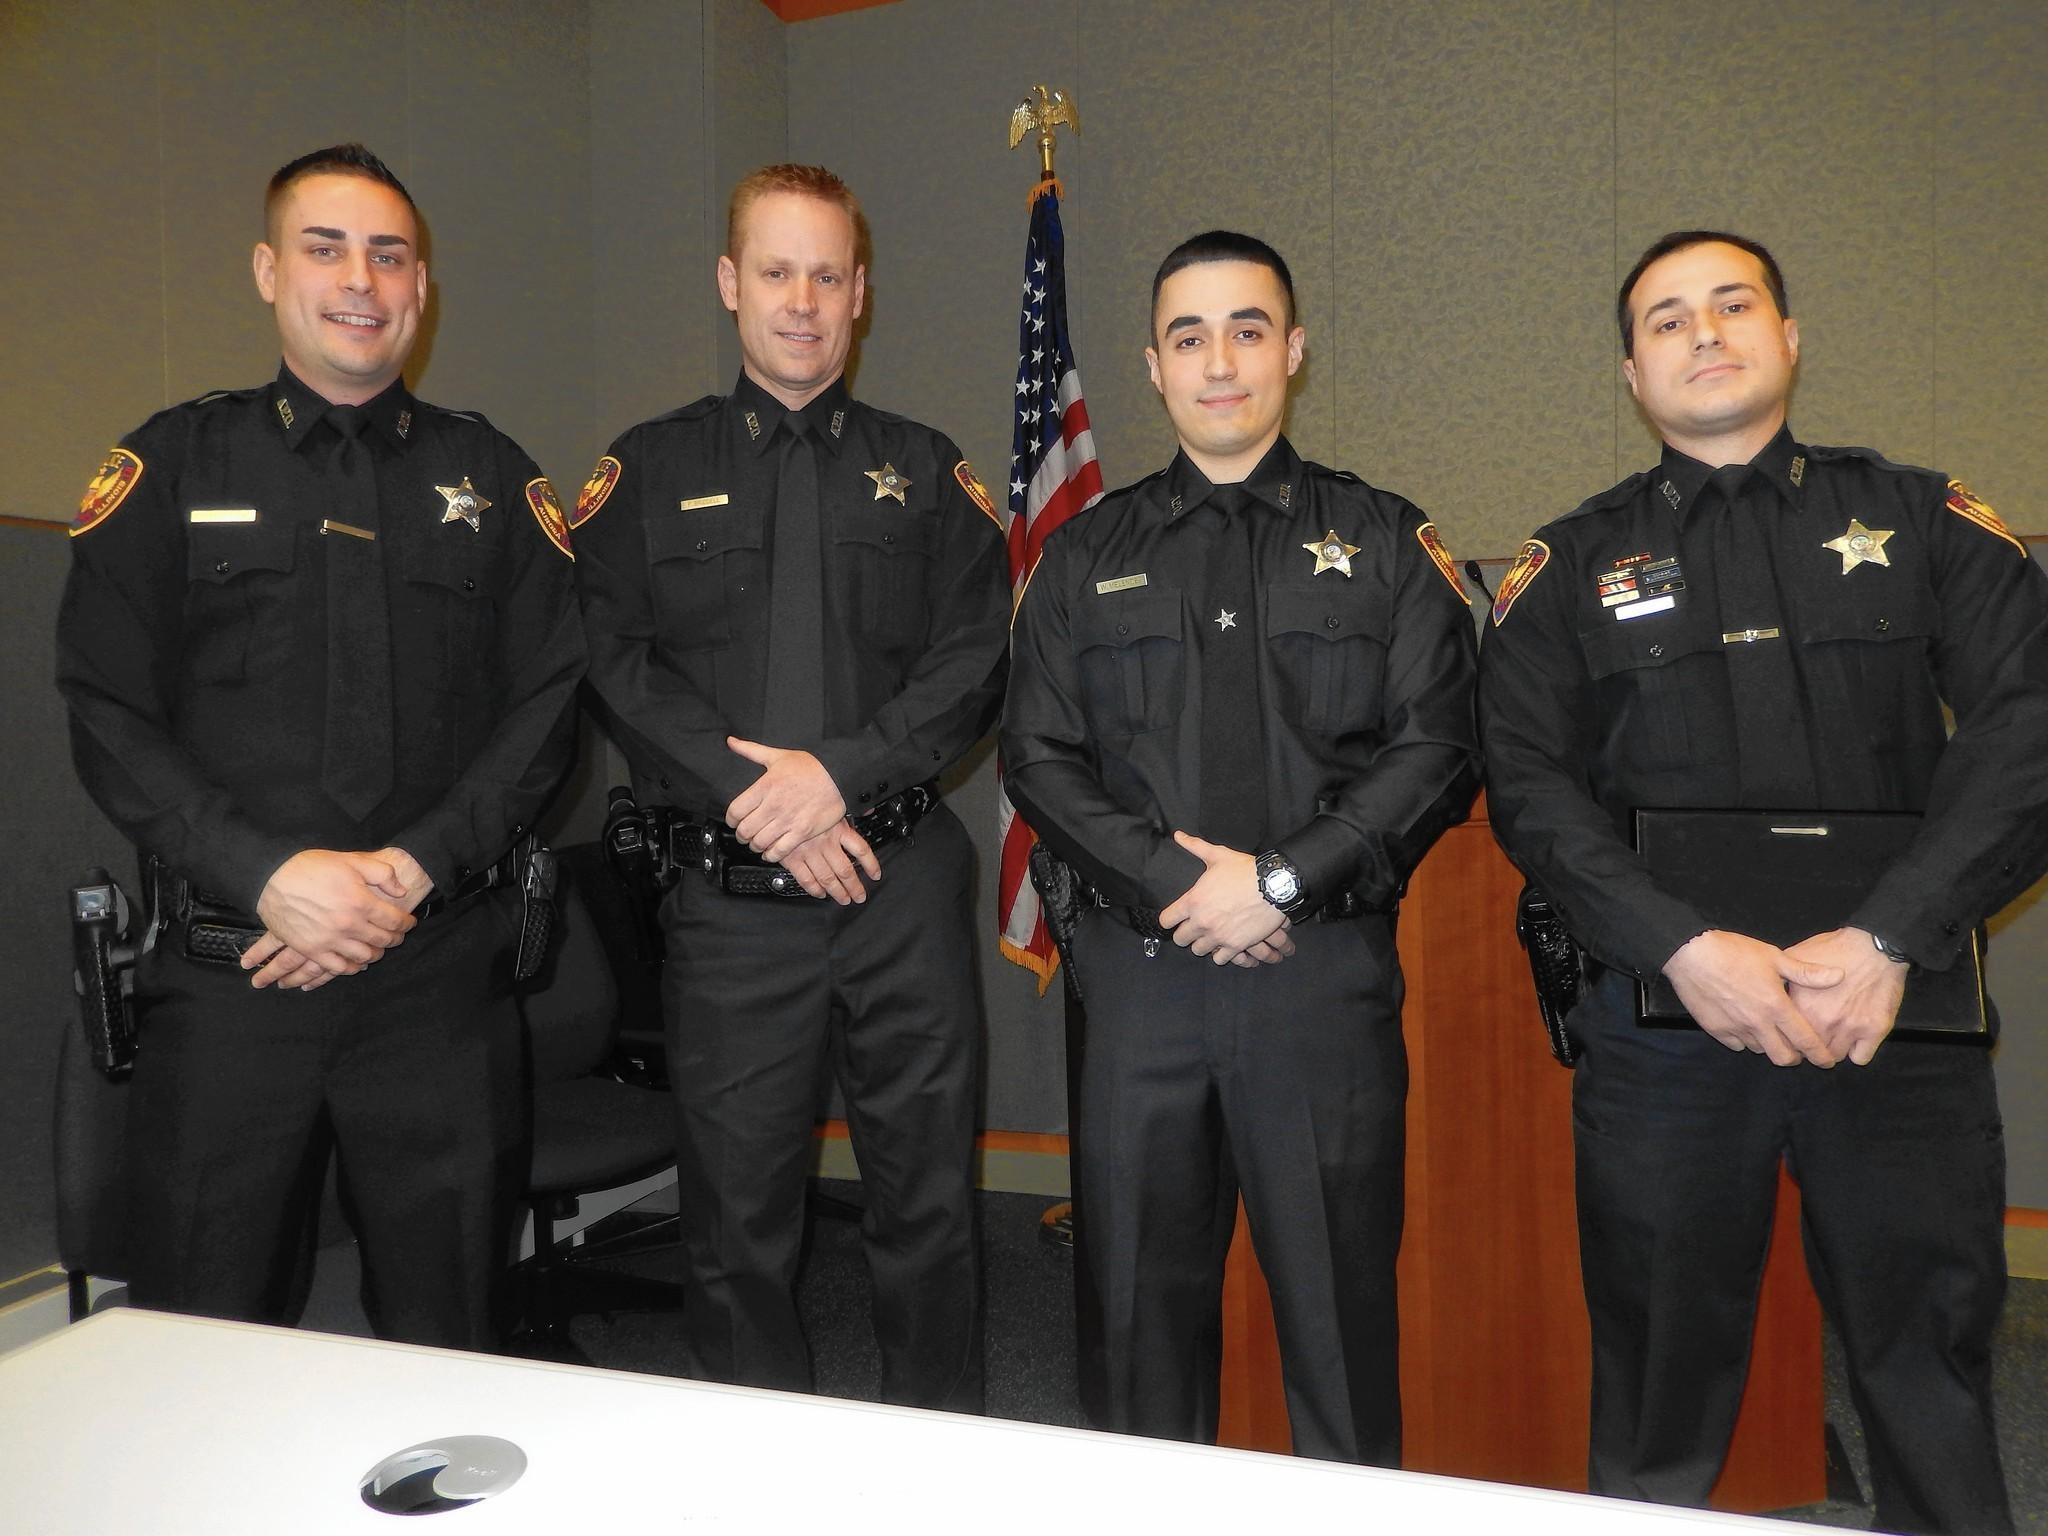 Aurora police honor four men as CoEmployees of Year  Aurora BeaconNews